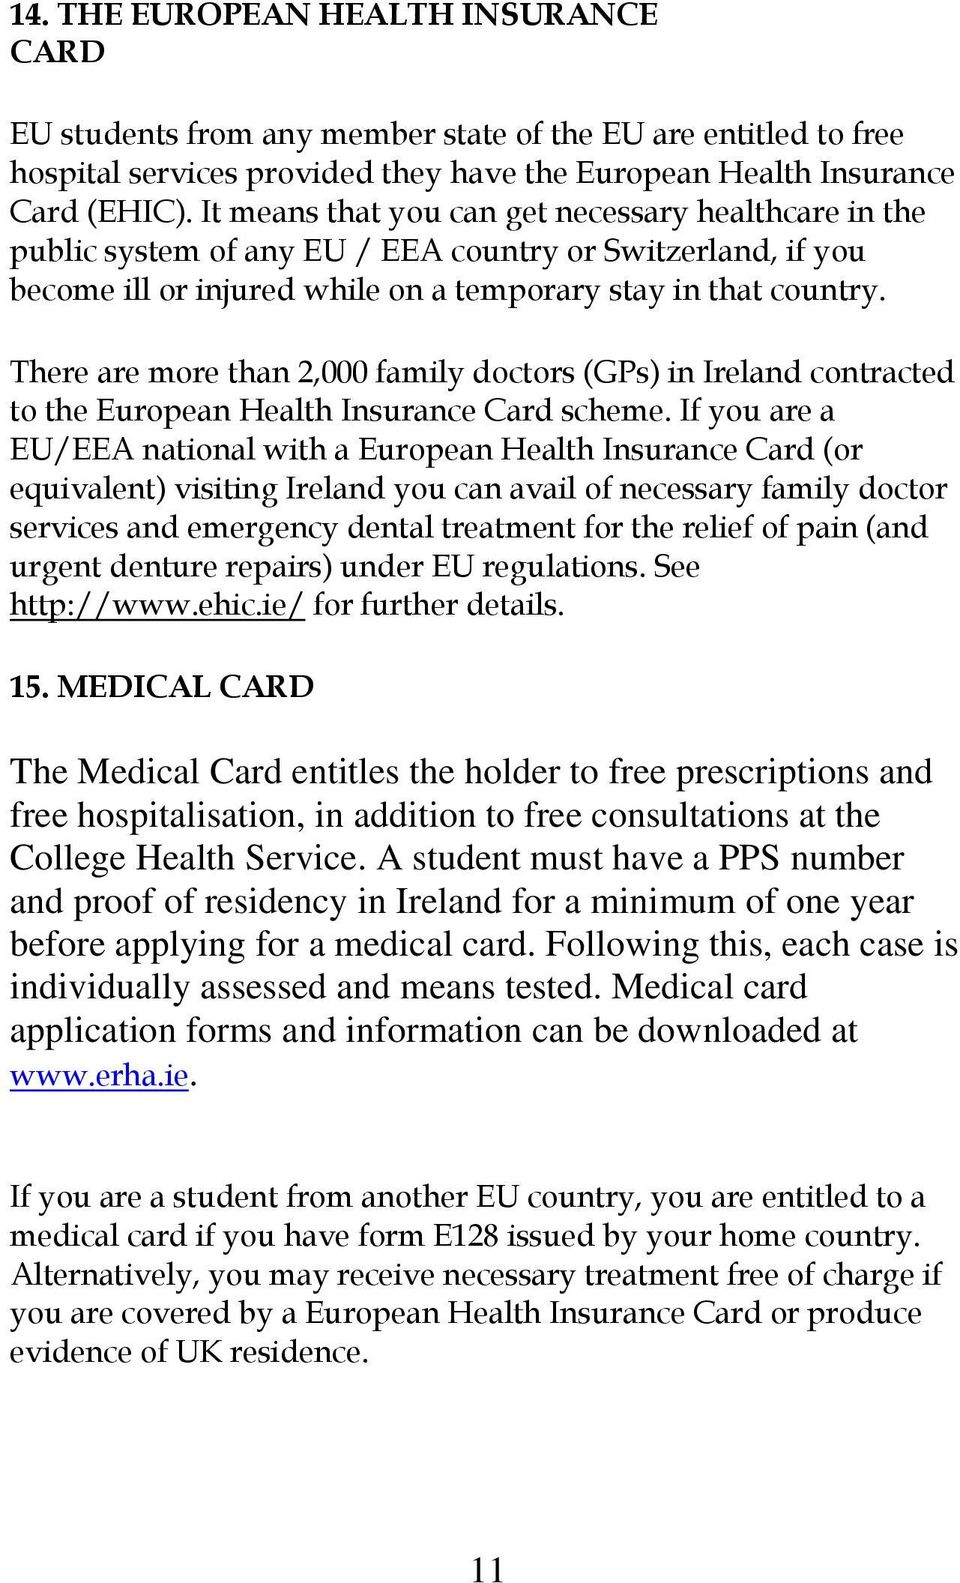 There are more than 2,000 family doctors (GPs) in Ireland contracted to the European Health Insurance Card scheme.